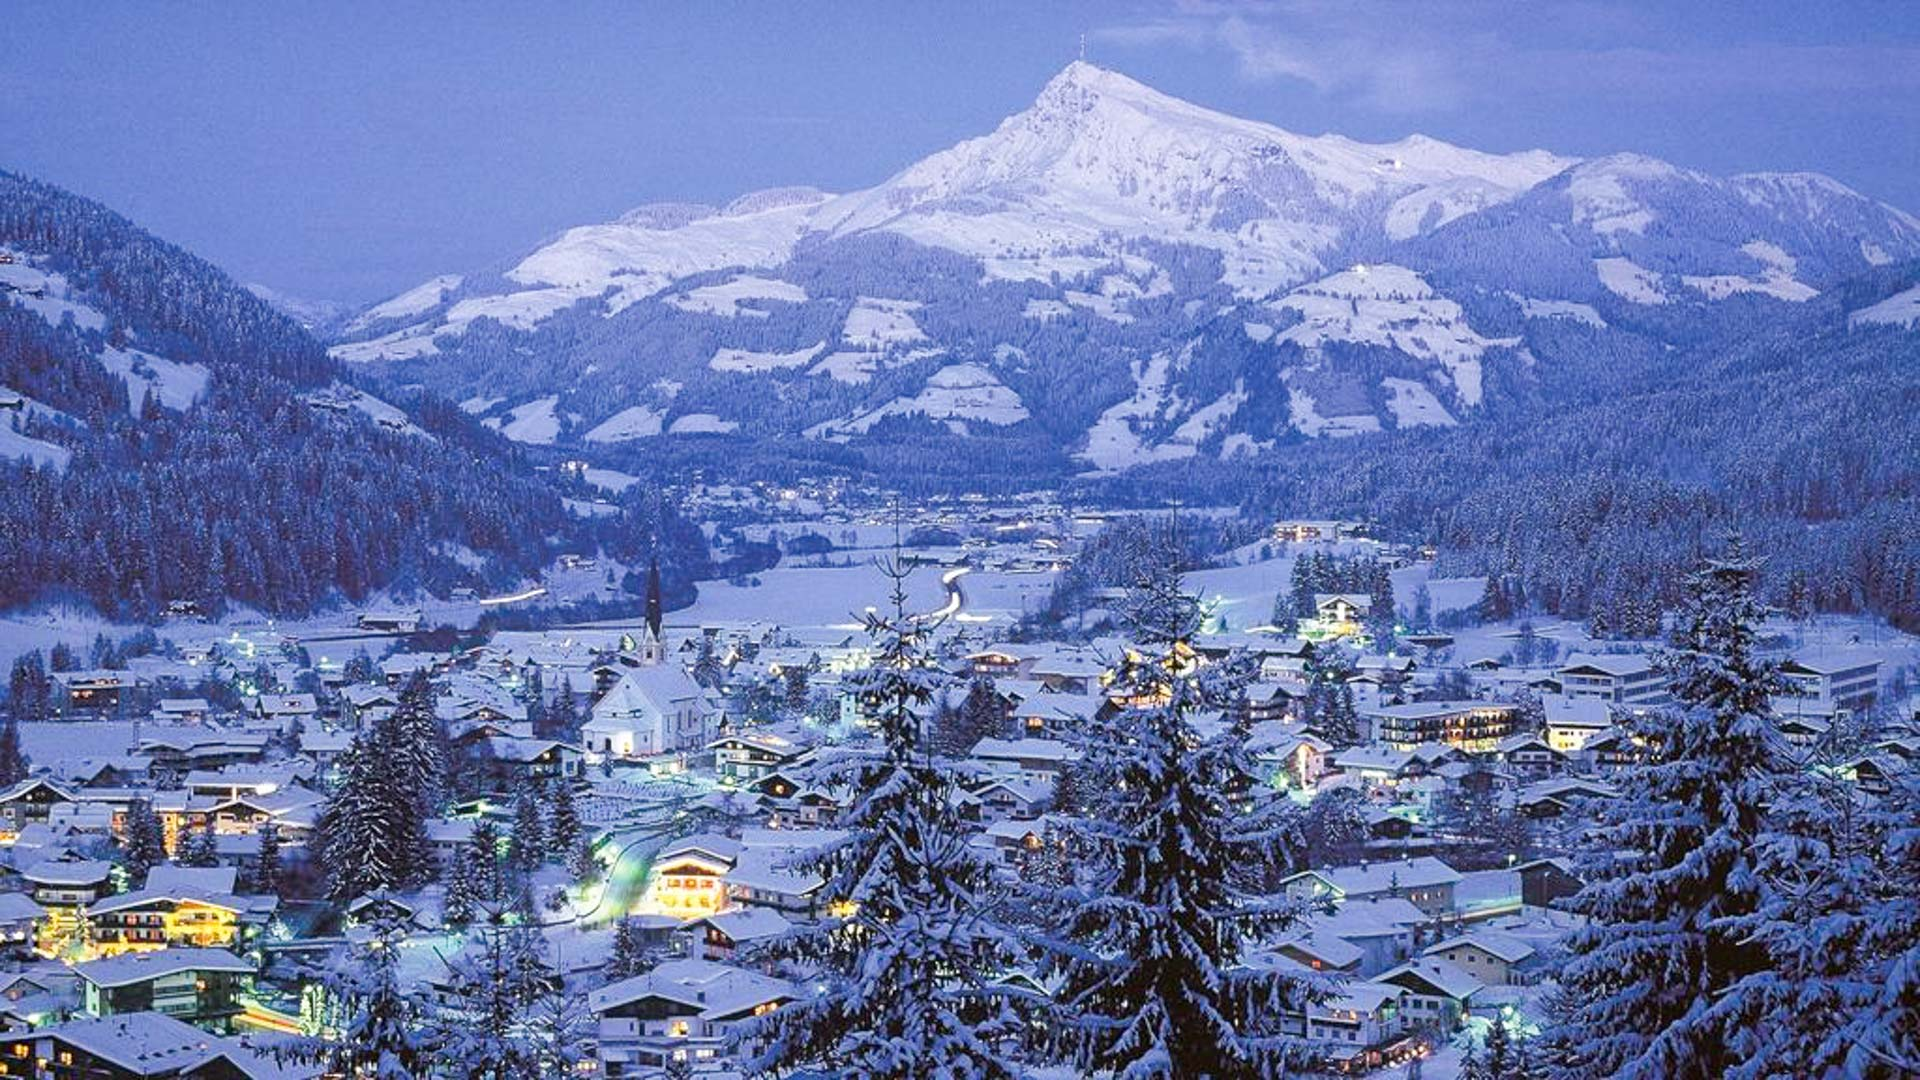 The beautiful Alpine ski village of Kirchberg with glowing lights in the window just after dusk and the ski area visible behind